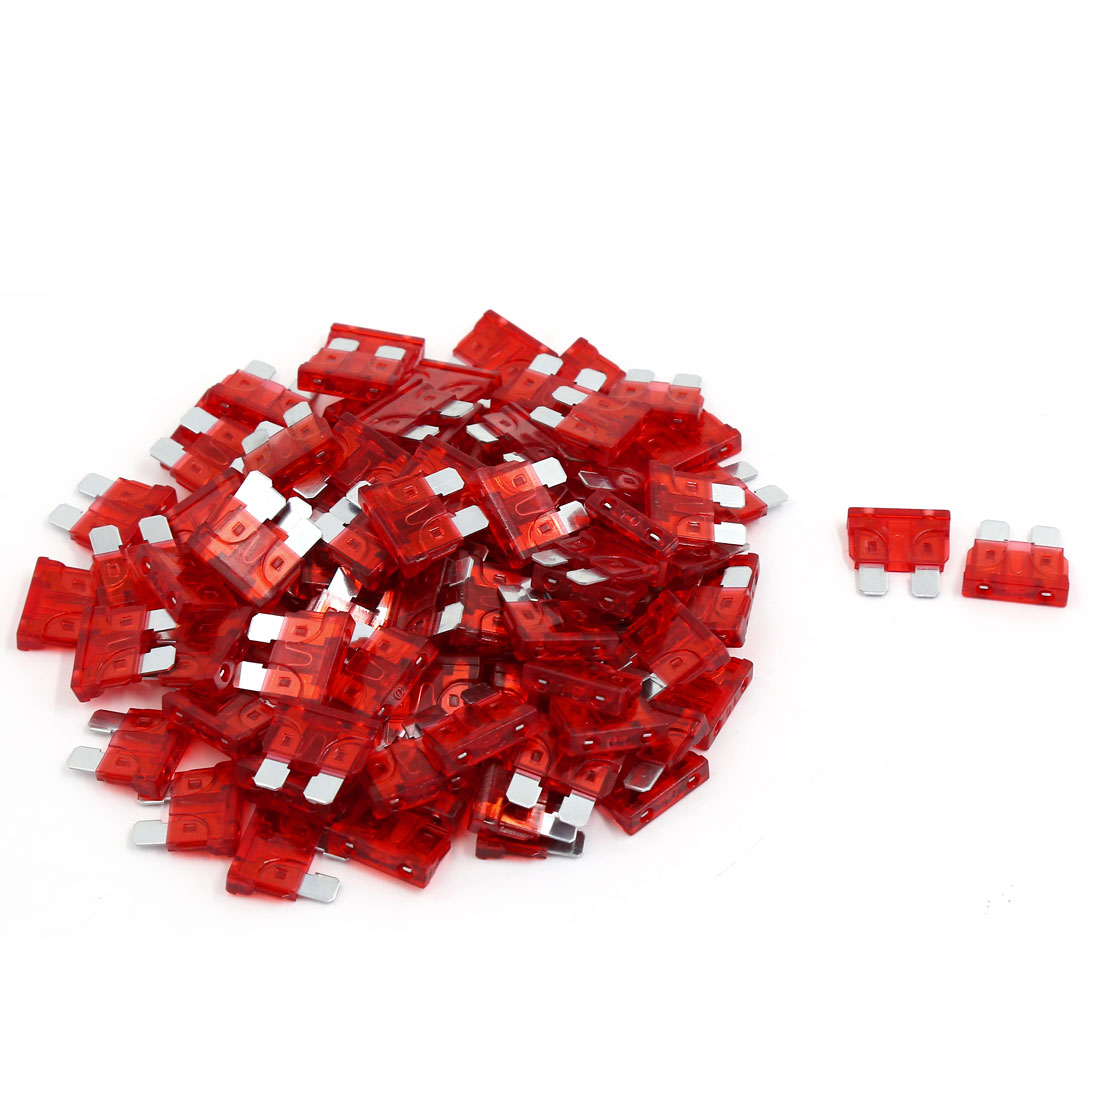 101 Pcs 10A Medium Size ATC Blade Type Fuse Fuses Red for Car Boat Motorcycle